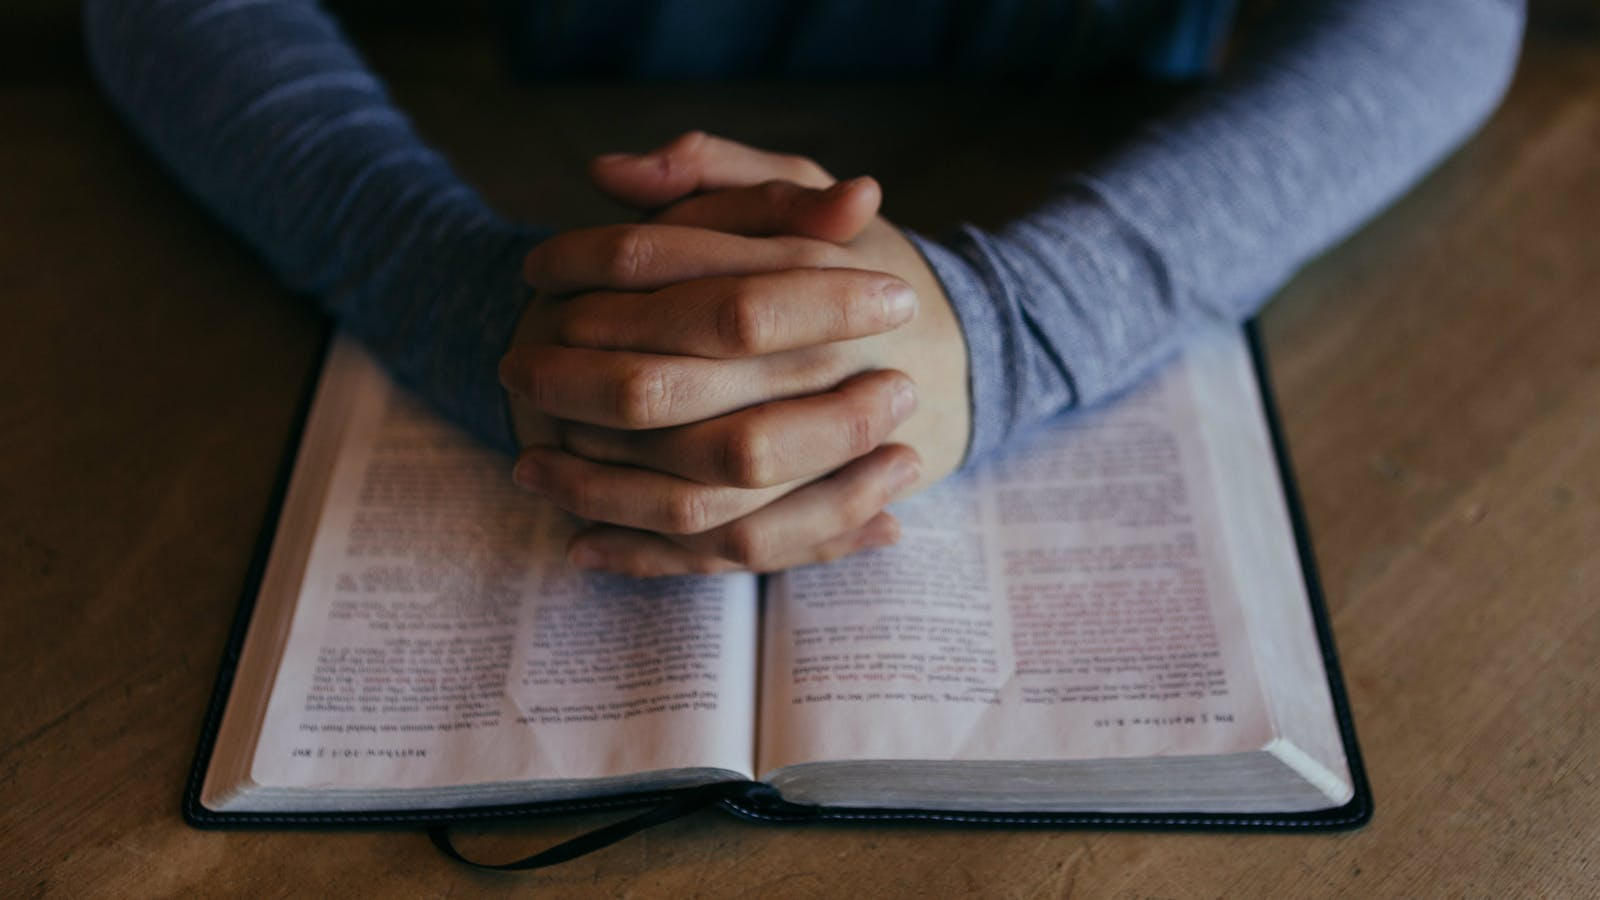 Thom S. Rainer on Seven Heartfelt Prayers by Pastors for Their Churches in 2021